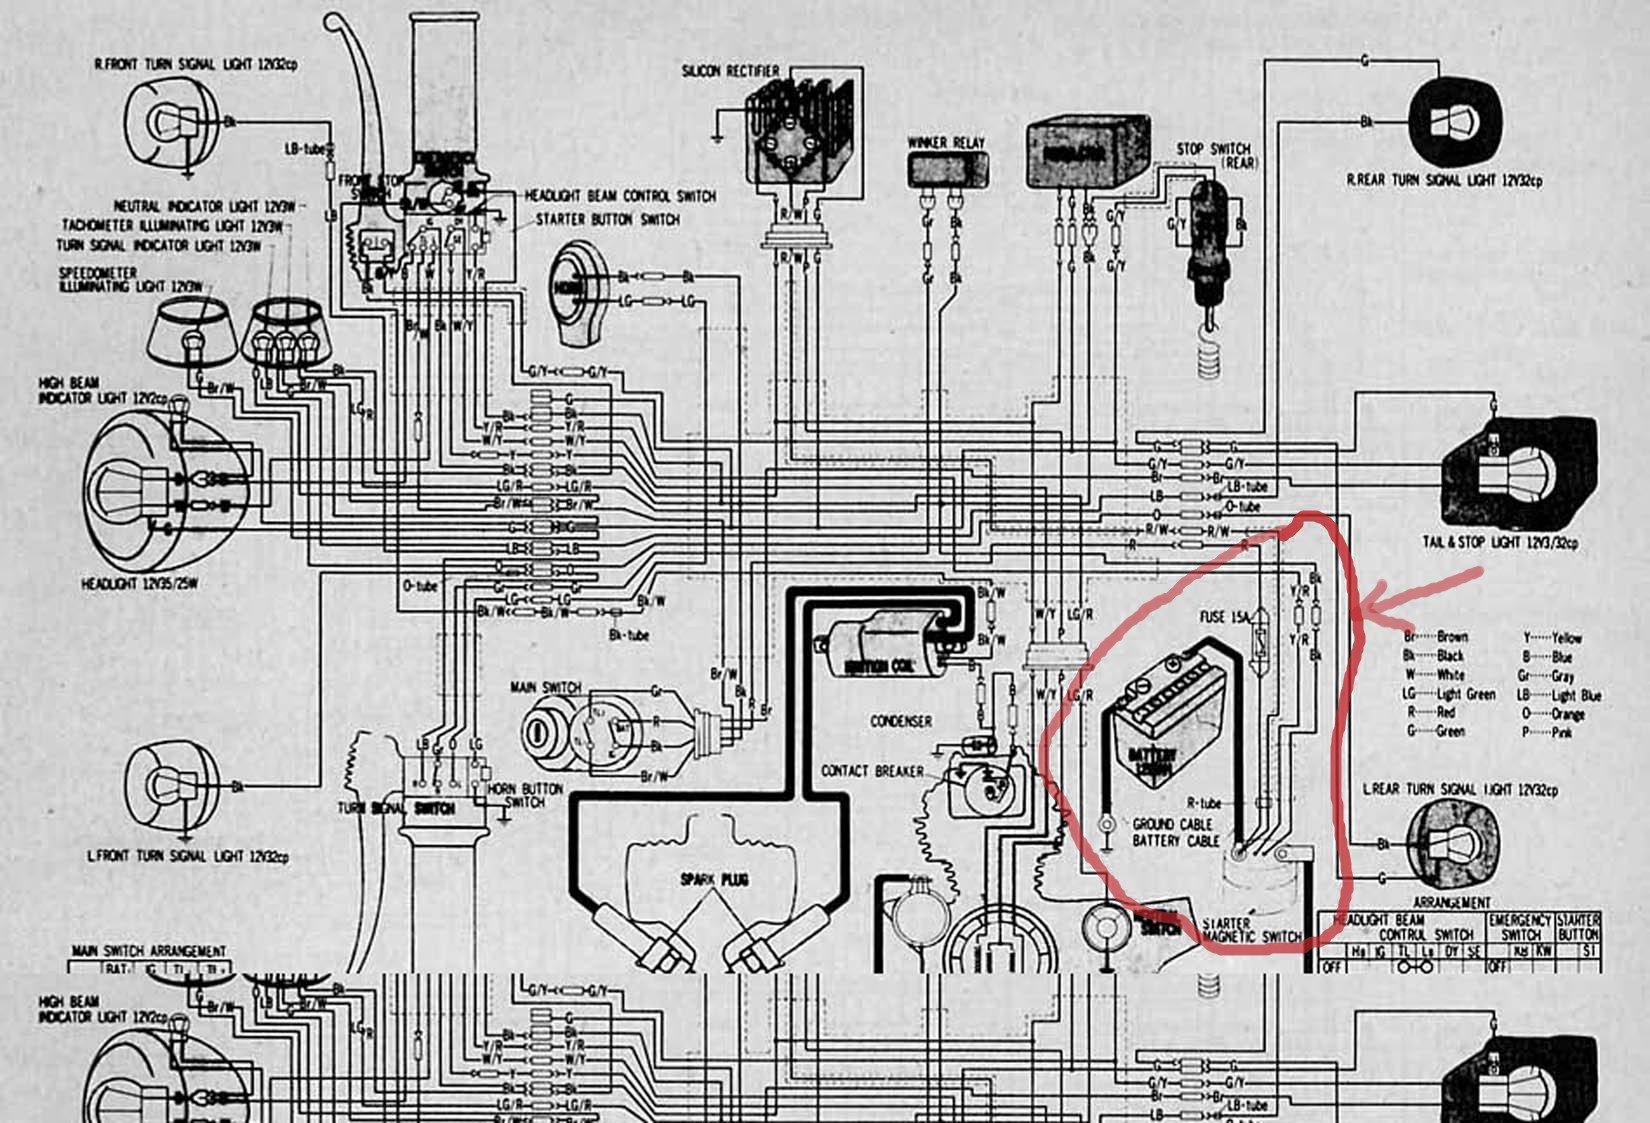 Honda Cb 700 Wire Diagram 1968 Chevy Truck Wiring Diagram Schematic Bege Wiring Diagram